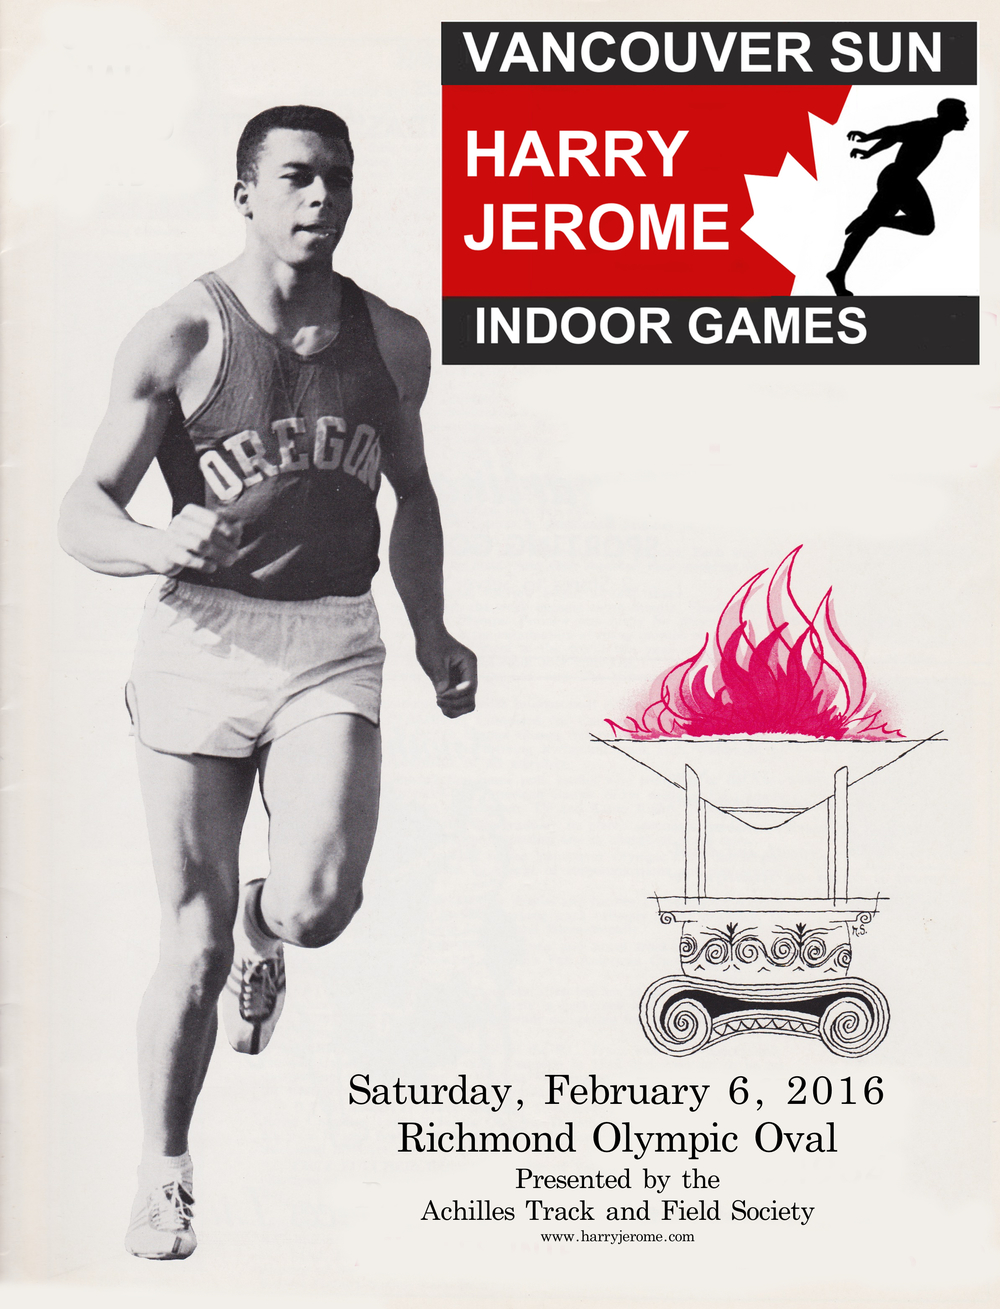 The Jerome Indoor Games provides opportunity for athletes of all ages from 10 yrs. to 70+ years on the 5 lanes of the 200m Pulastic track.  This competition is an important step towards the 2016 Rio Olympic Games set for this August and for all young athletes with the dream of wearing the Maple Leaf sometime in the future   Information for entry is available at www.harryjerome.com Entries close on January 29, 2016. Early entries are advised, as space may be limited.